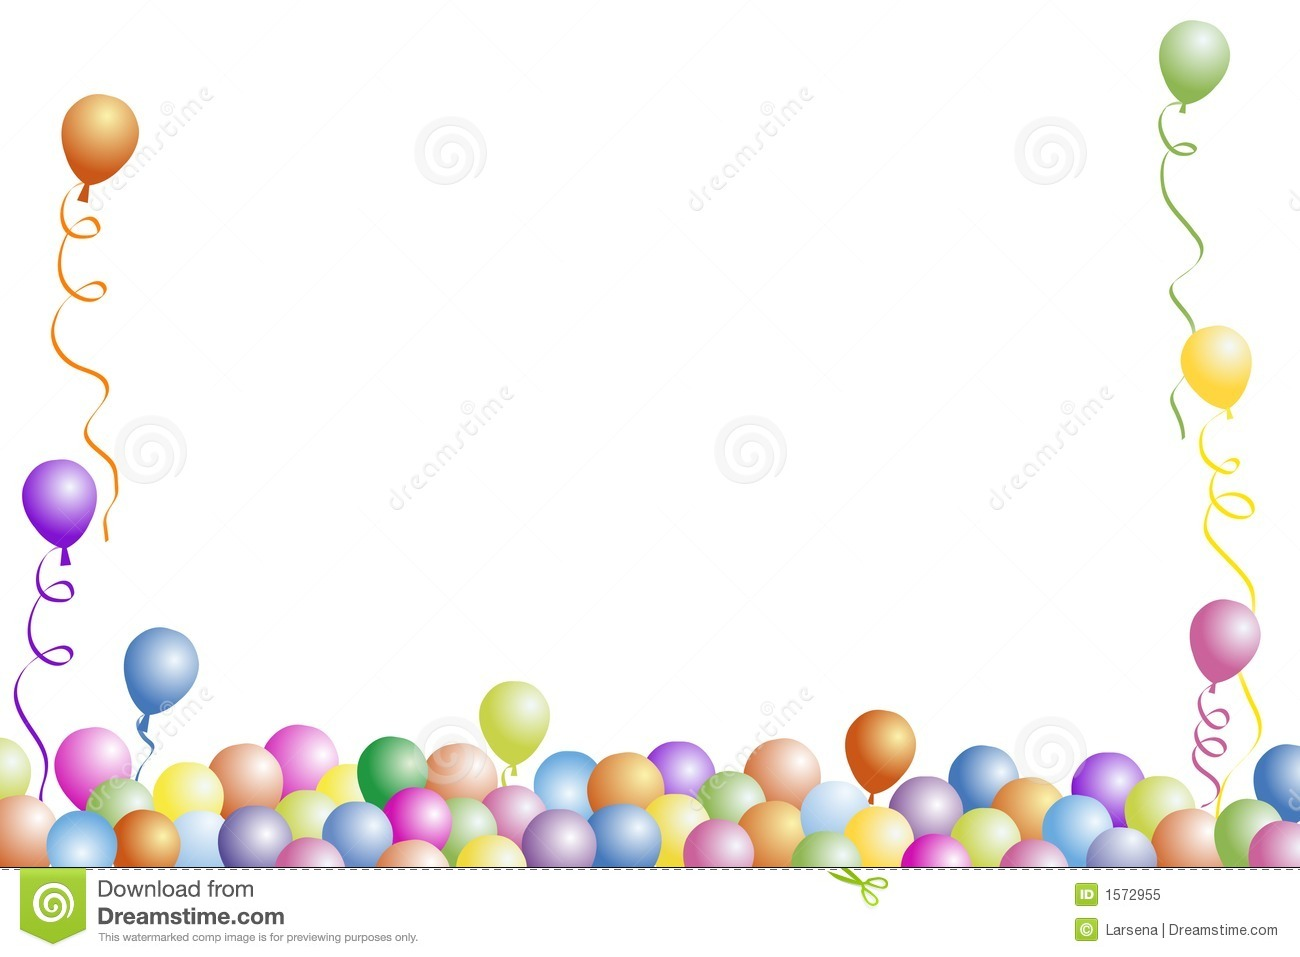 Clipart Balloon Borders Free